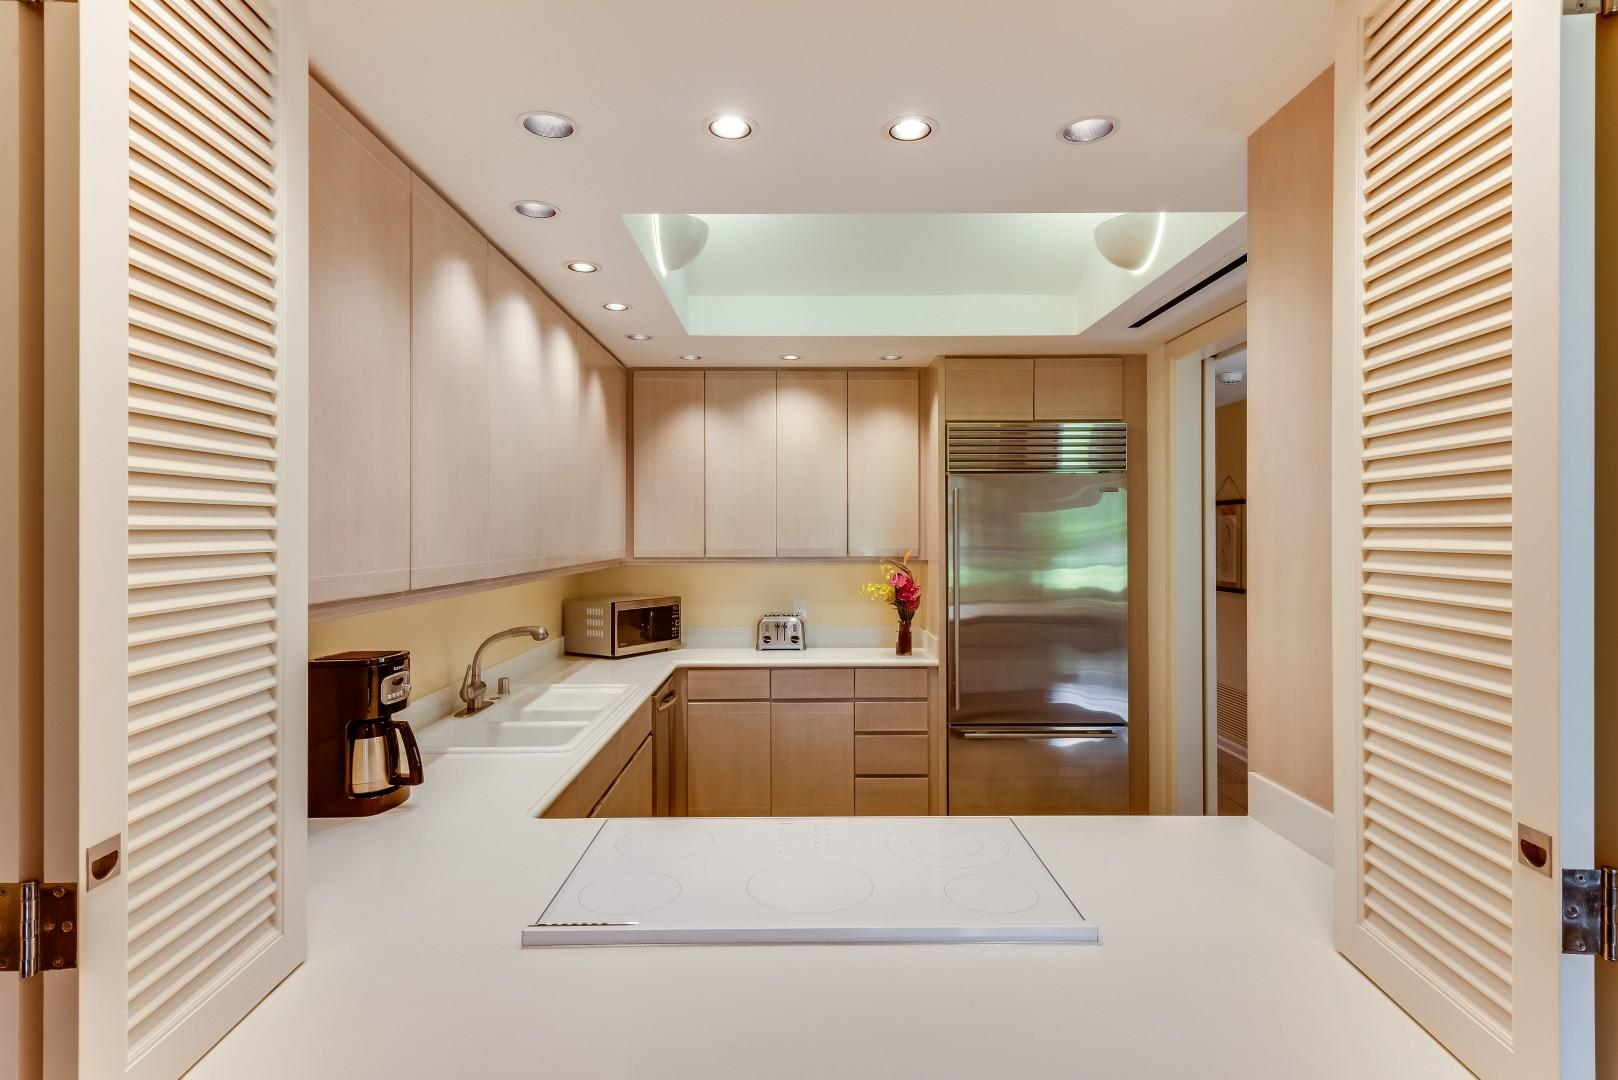 Spacious Fully-Equipped Kitchen w/ Stainless Steel Appliances, SubZero Refrigerator and Lockable Dacor Range